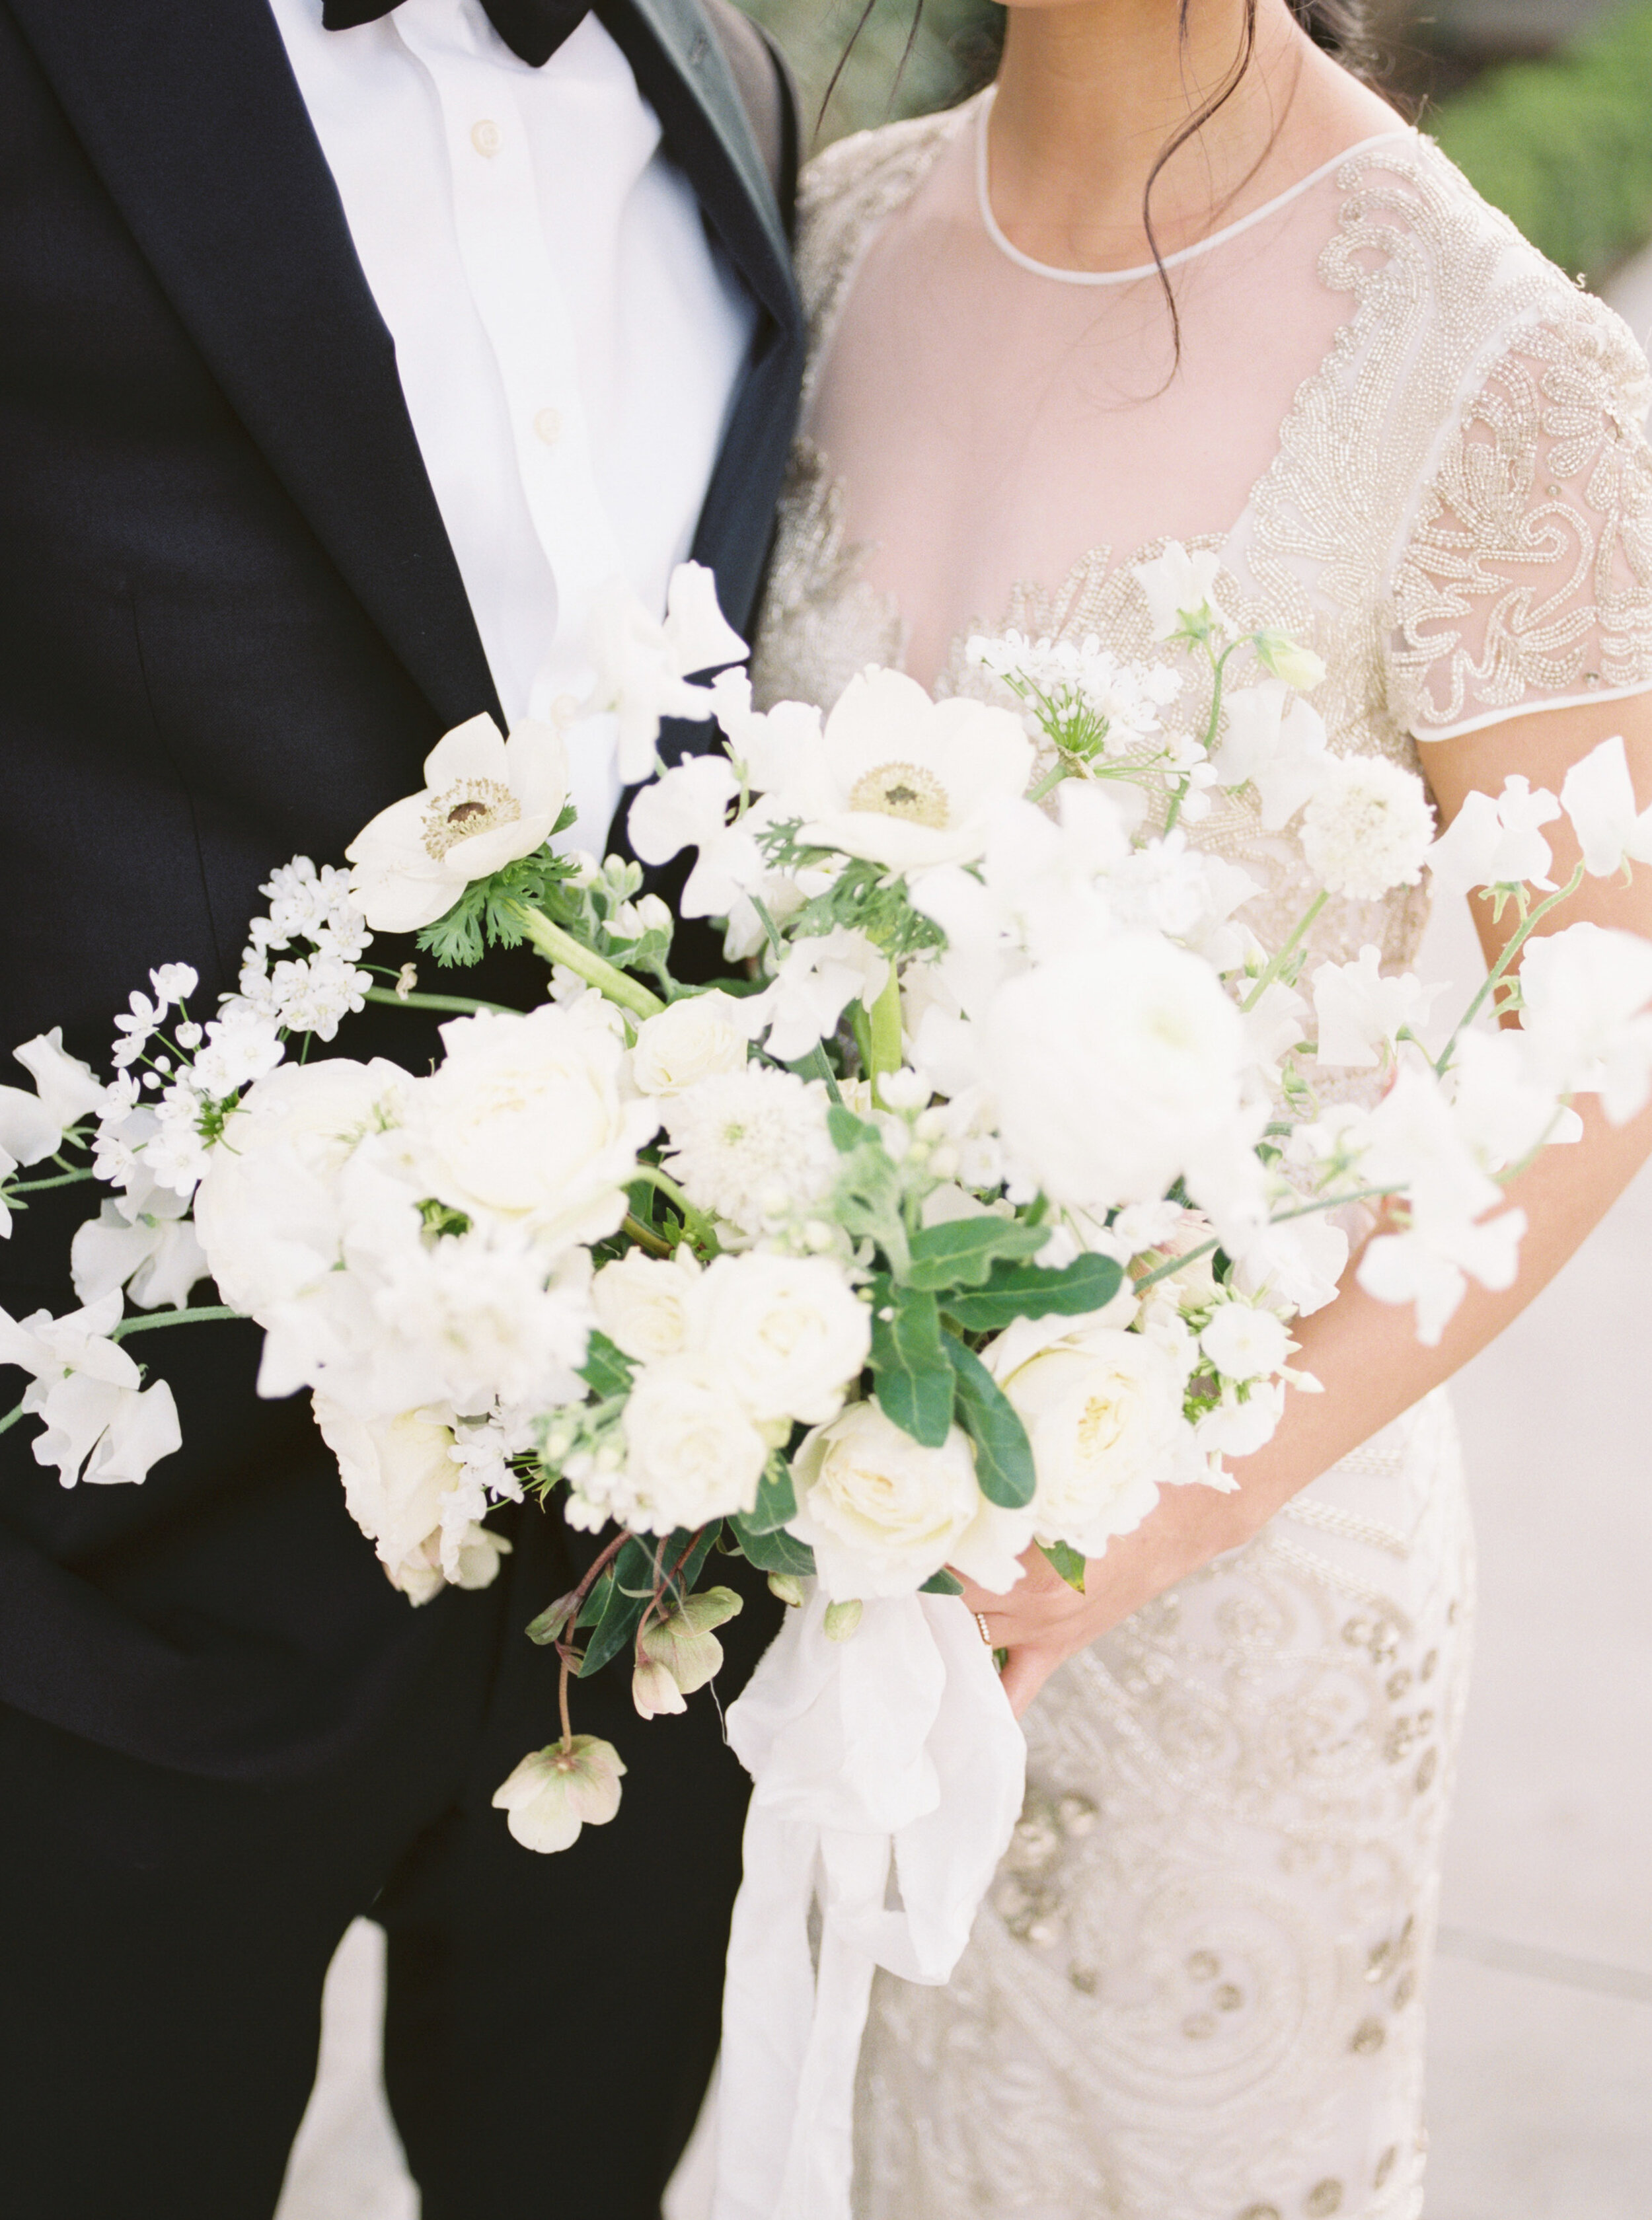 Elegant and romantic old Hollywood wedding with beaded Naeem Khan wedding gown, white organic florals, and epic sunset views at Griffith Observatory in Los Angeles by Liz Andolina Photography